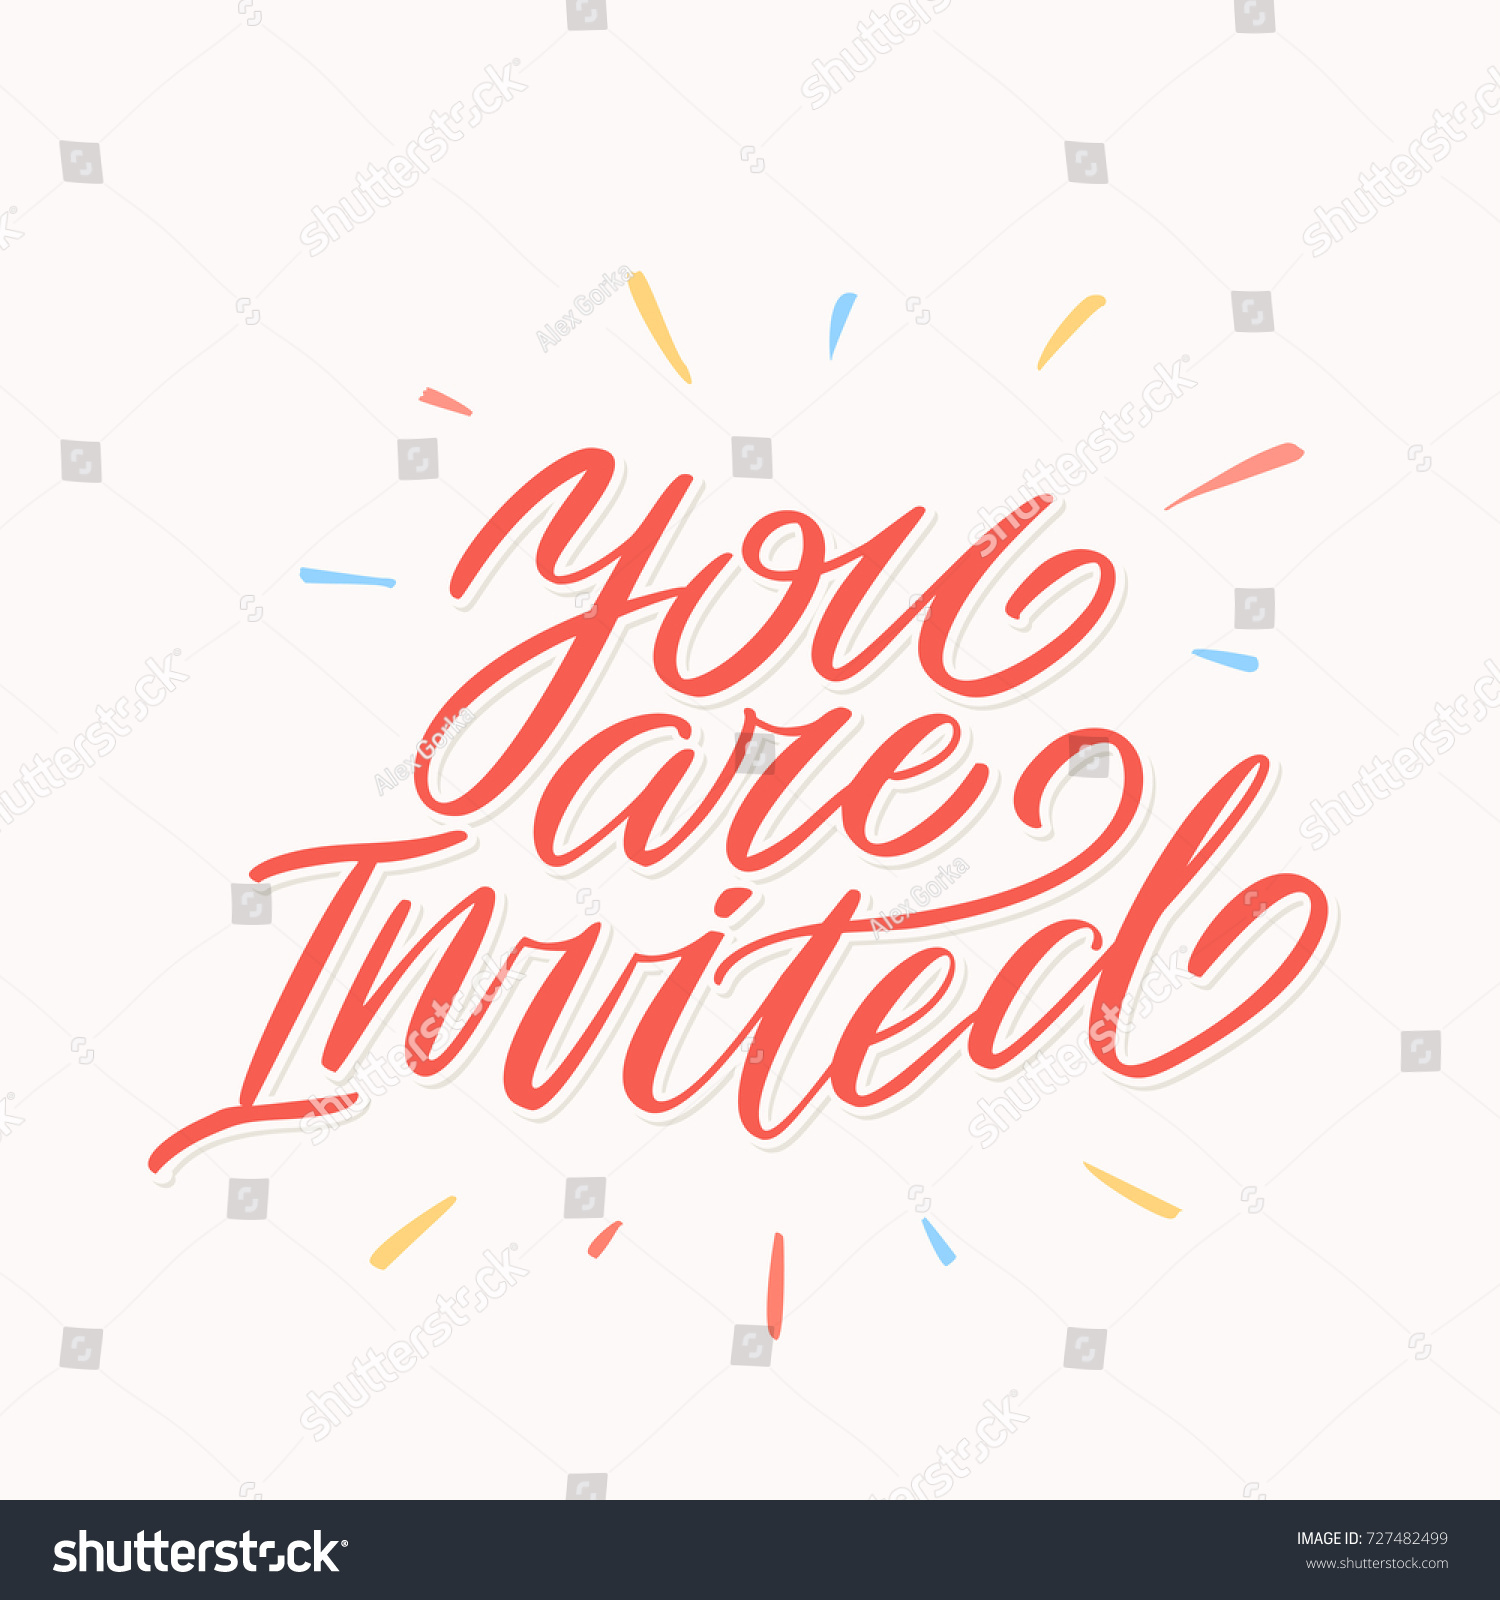 You invited invitation card stock vector 727482499 shutterstock you are invited invitation card stopboris Gallery